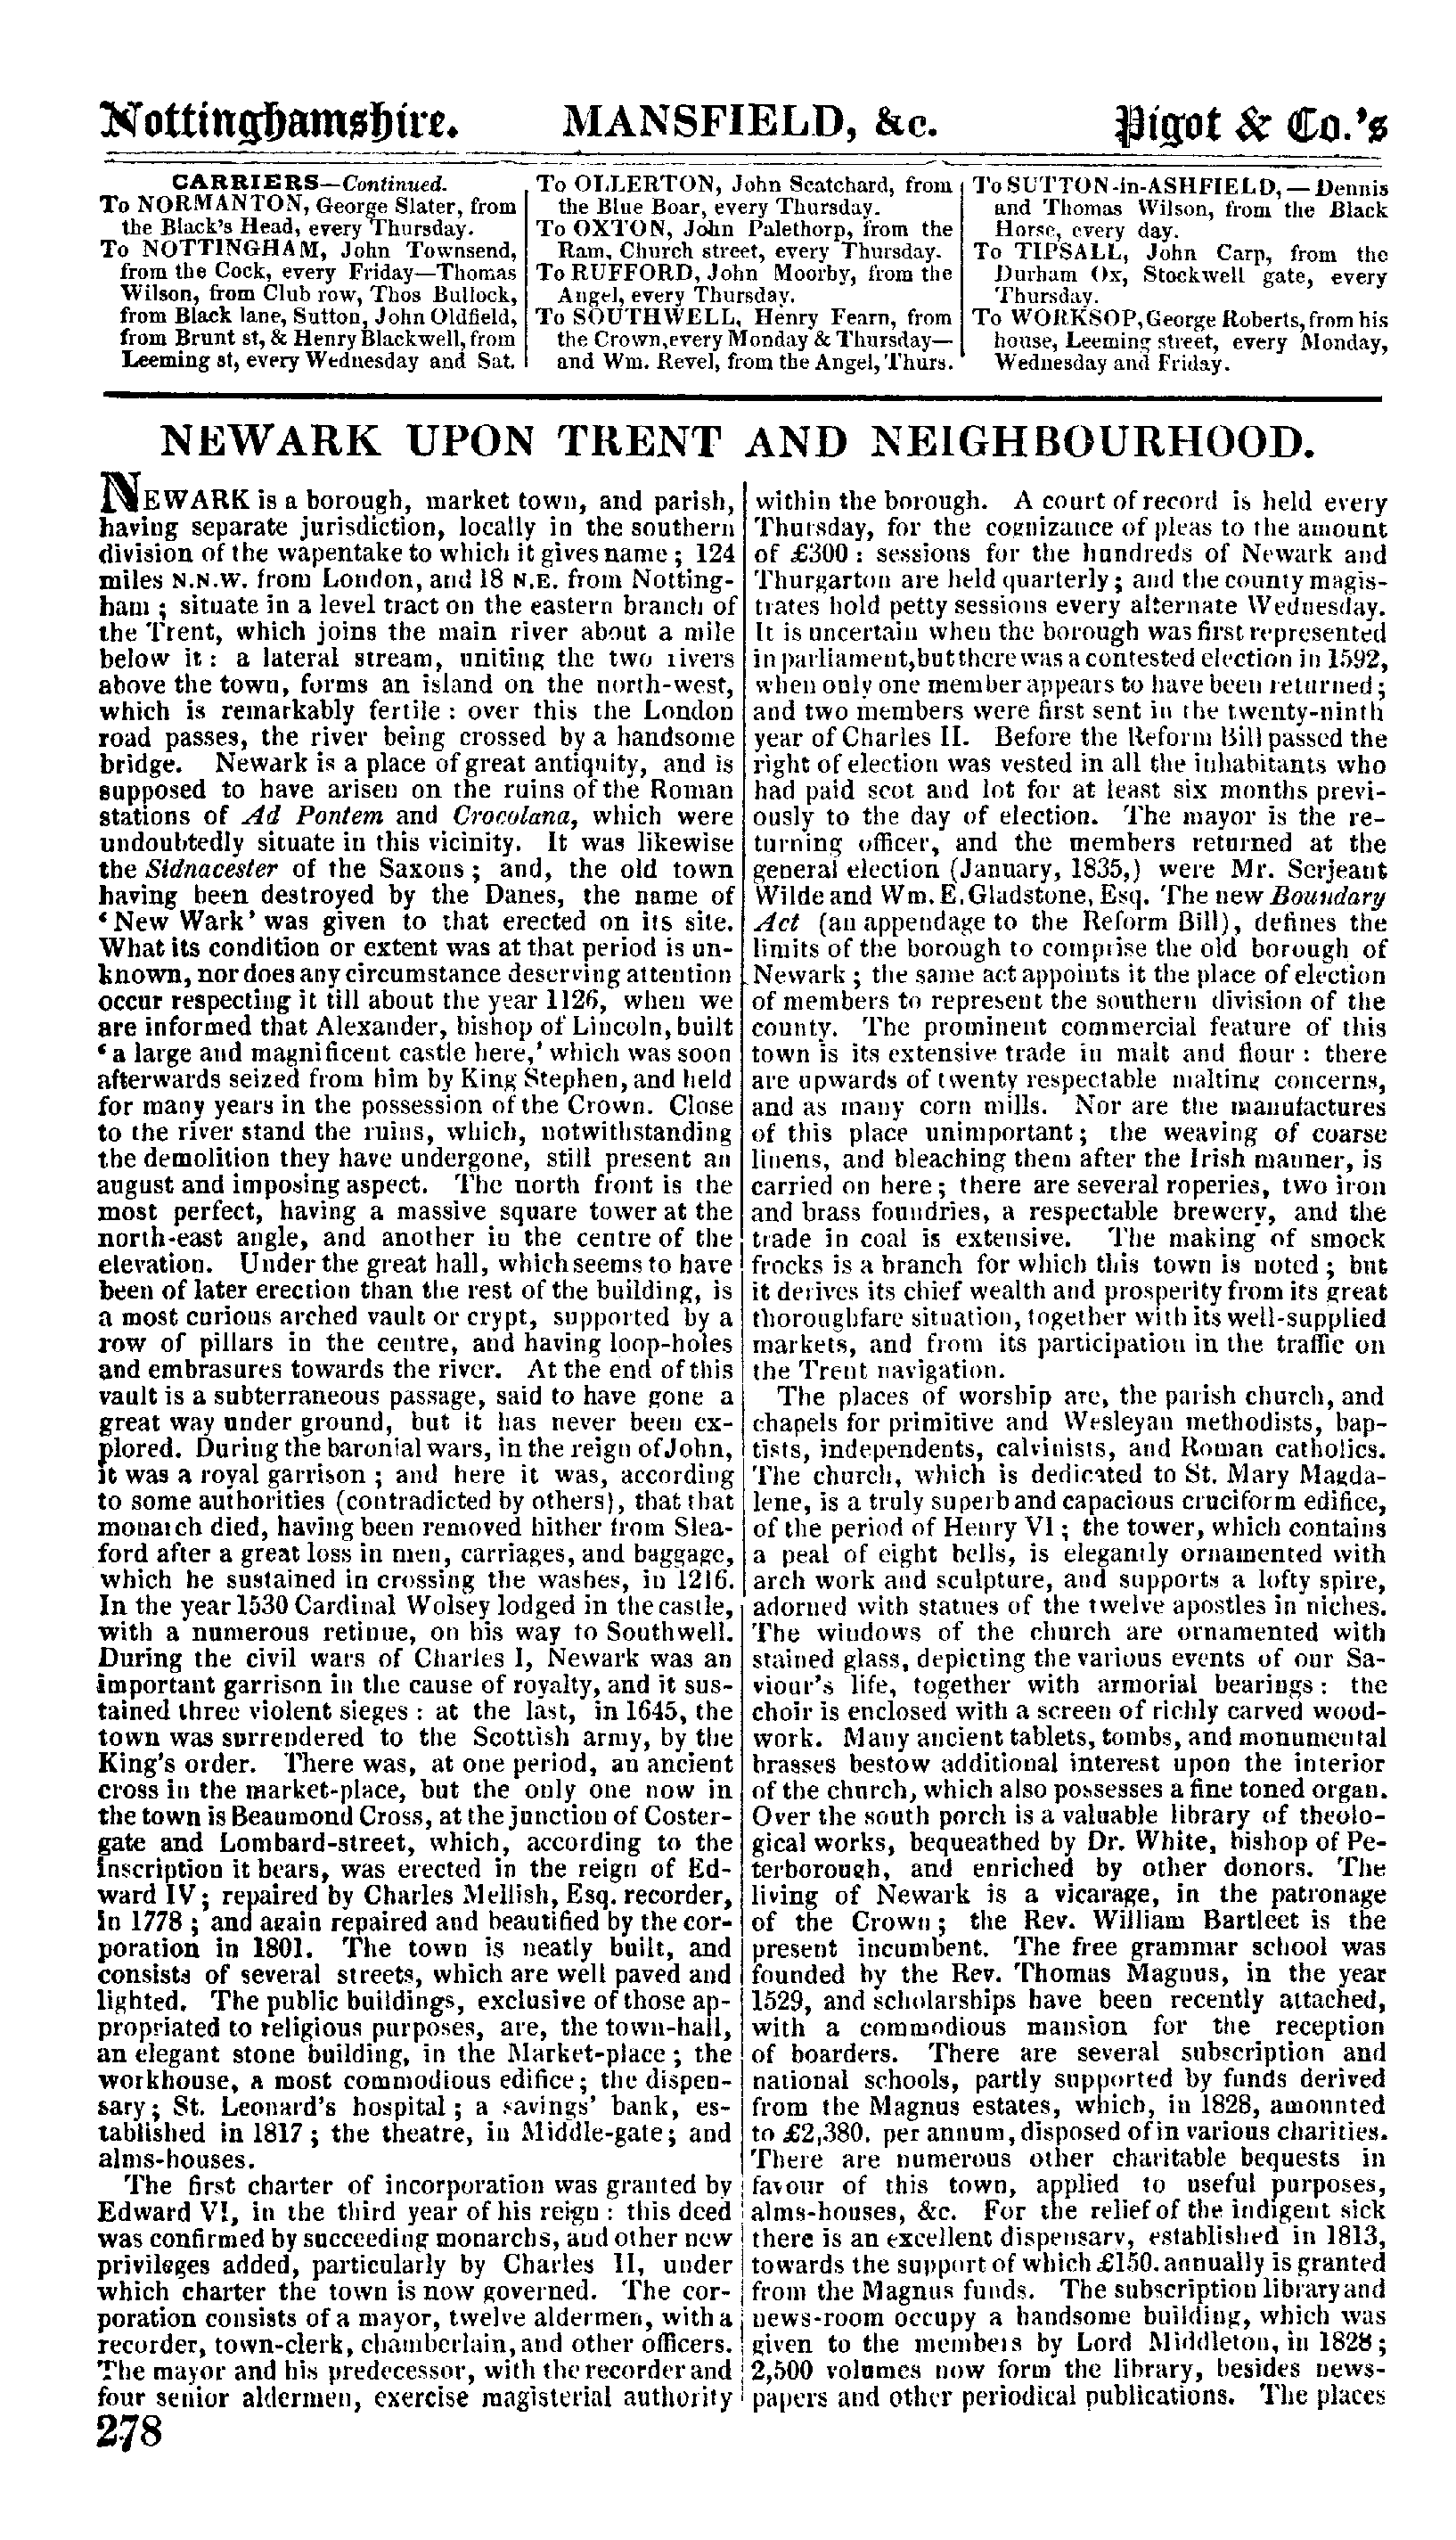 Pigot Directory of Nottinghamshire, 1835 page 278 - click to open larger version in a new window